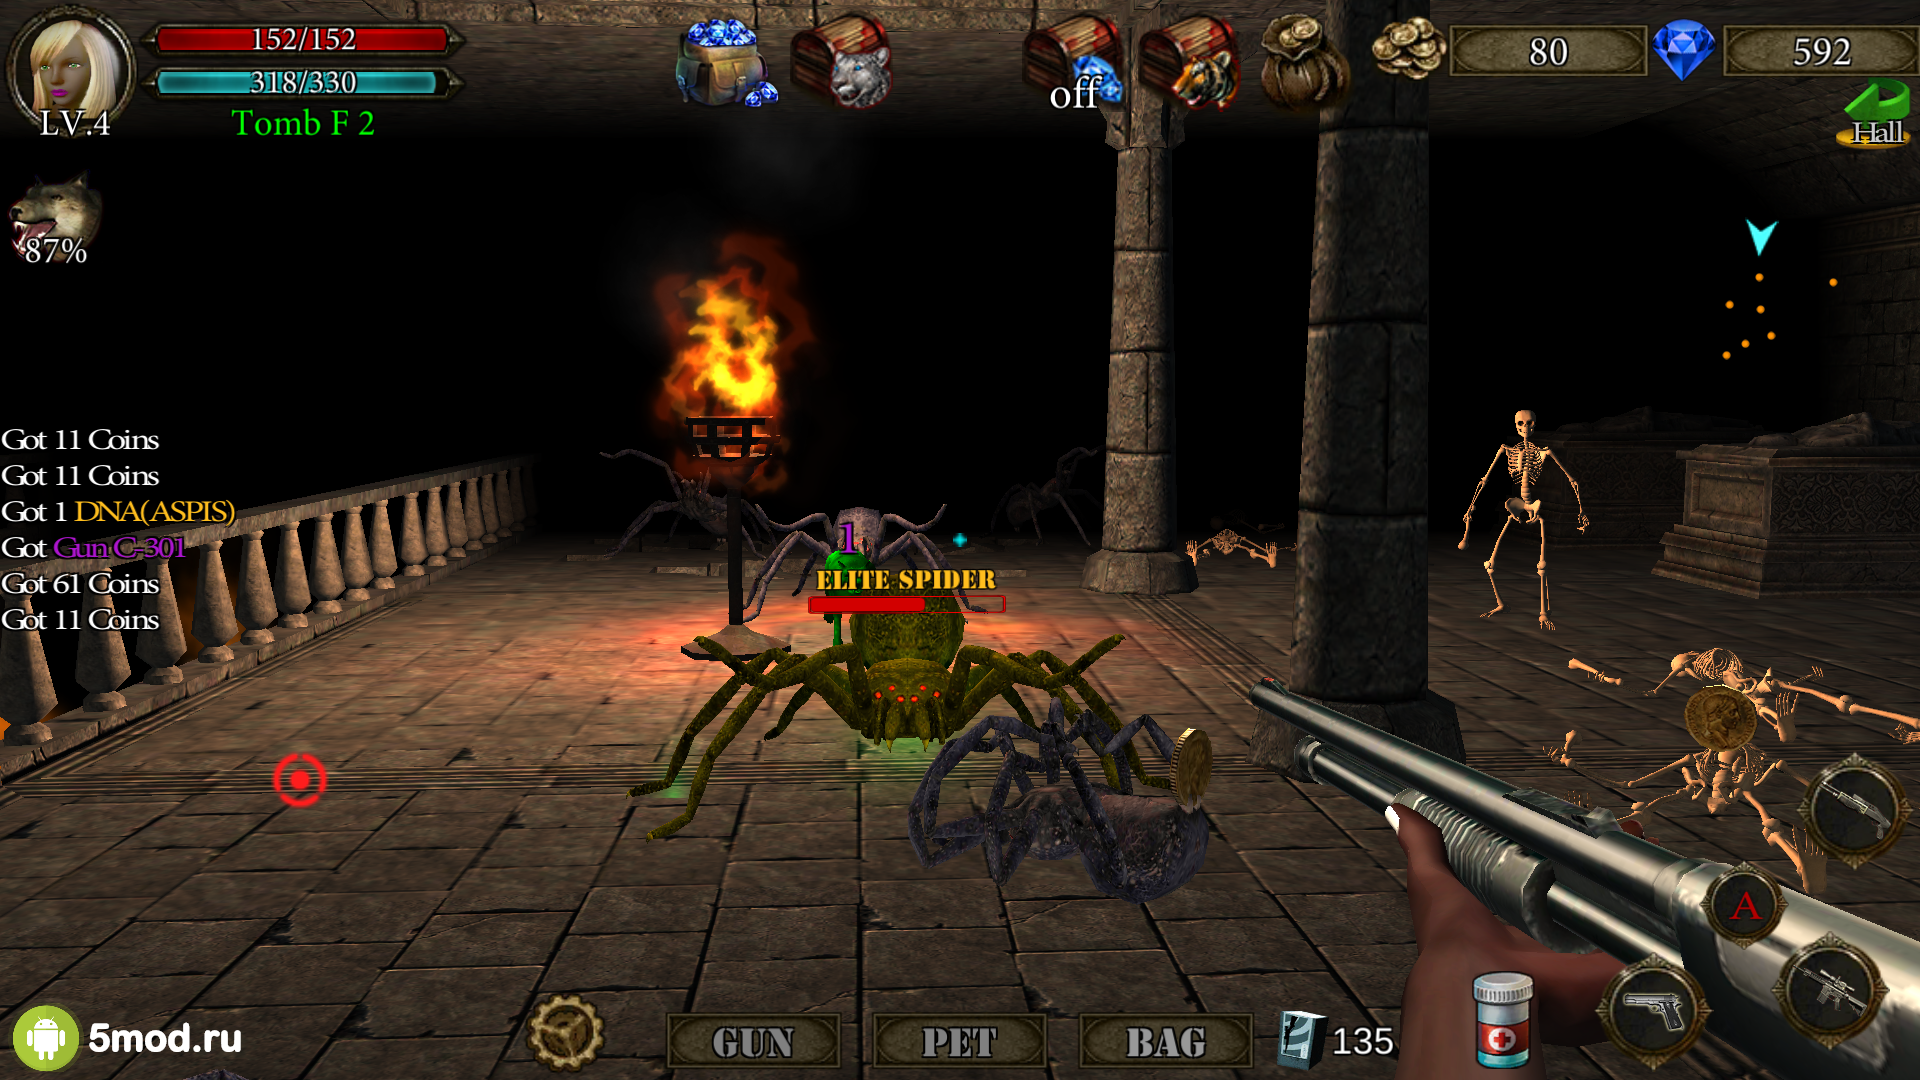 Dungeon Shooter V1.2: Before New Adventure